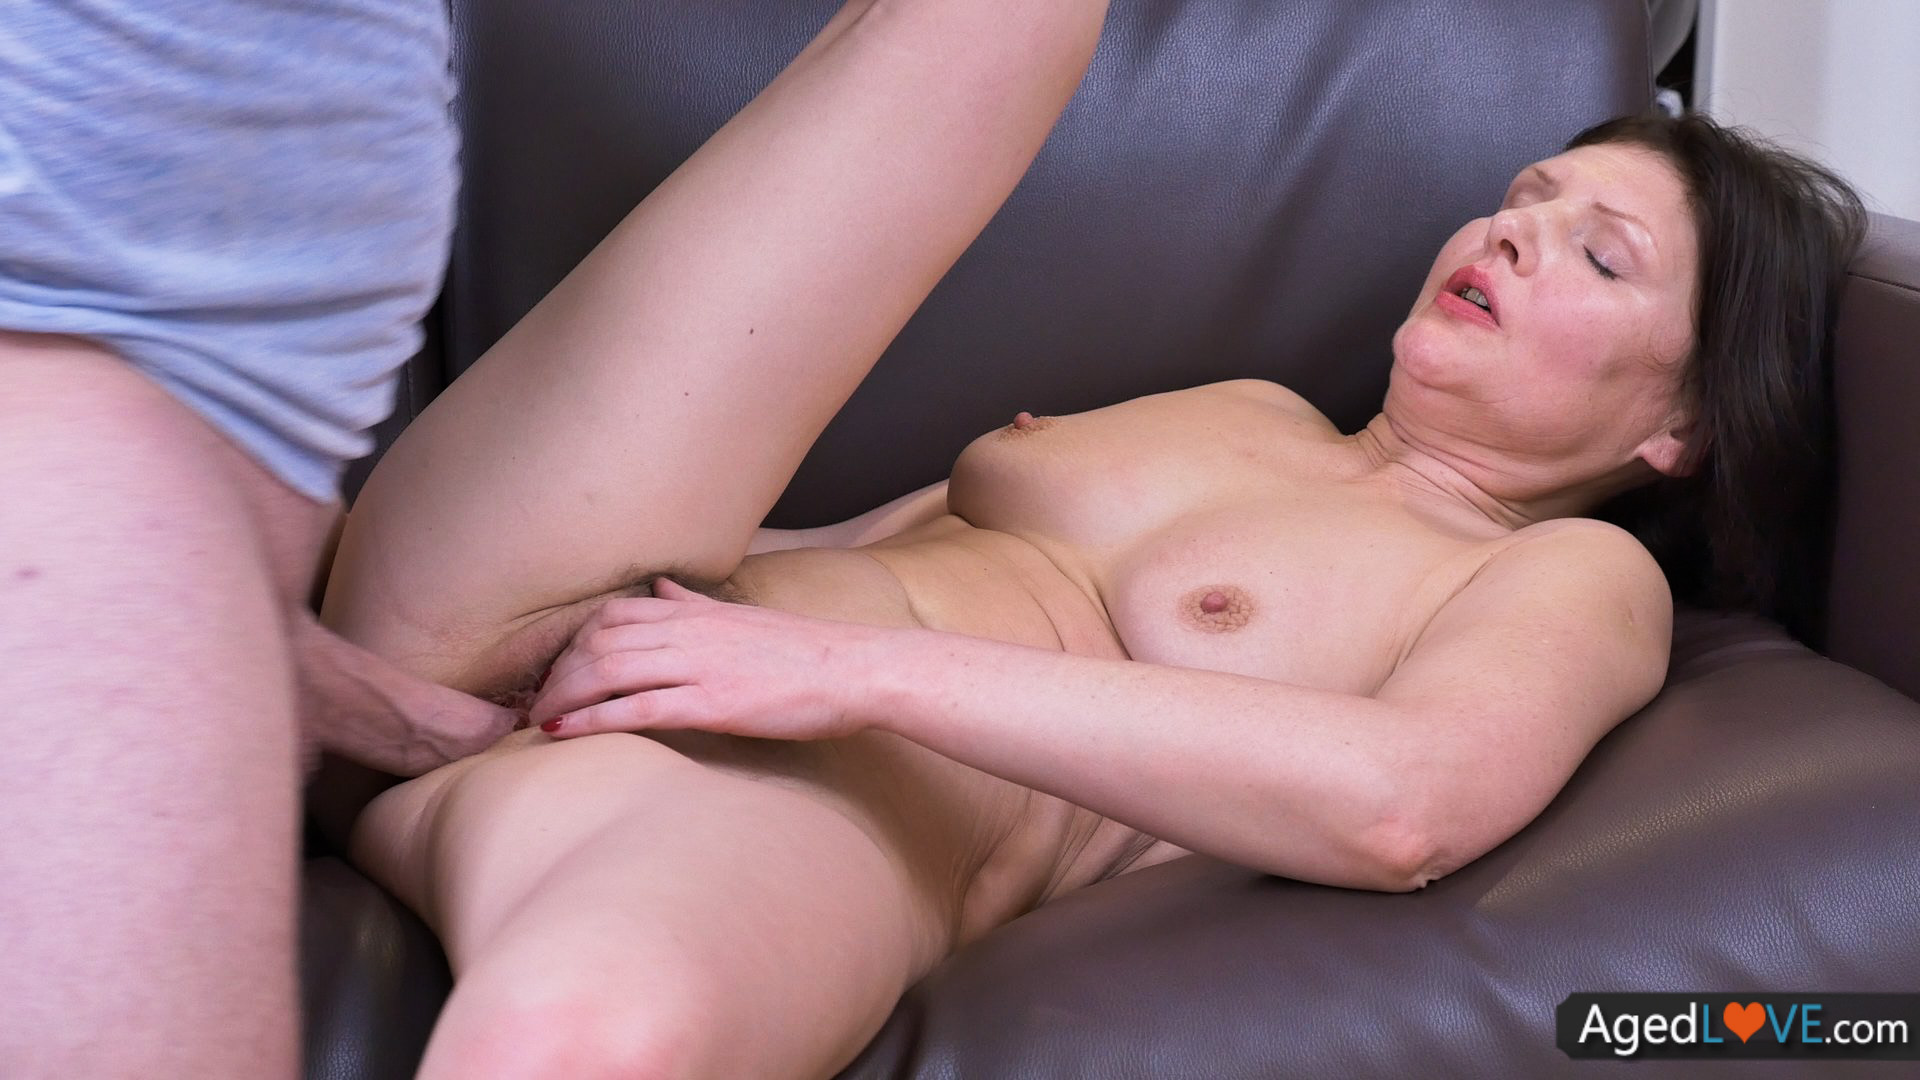 Agedlove blonde mature fucked hard by youngster 1